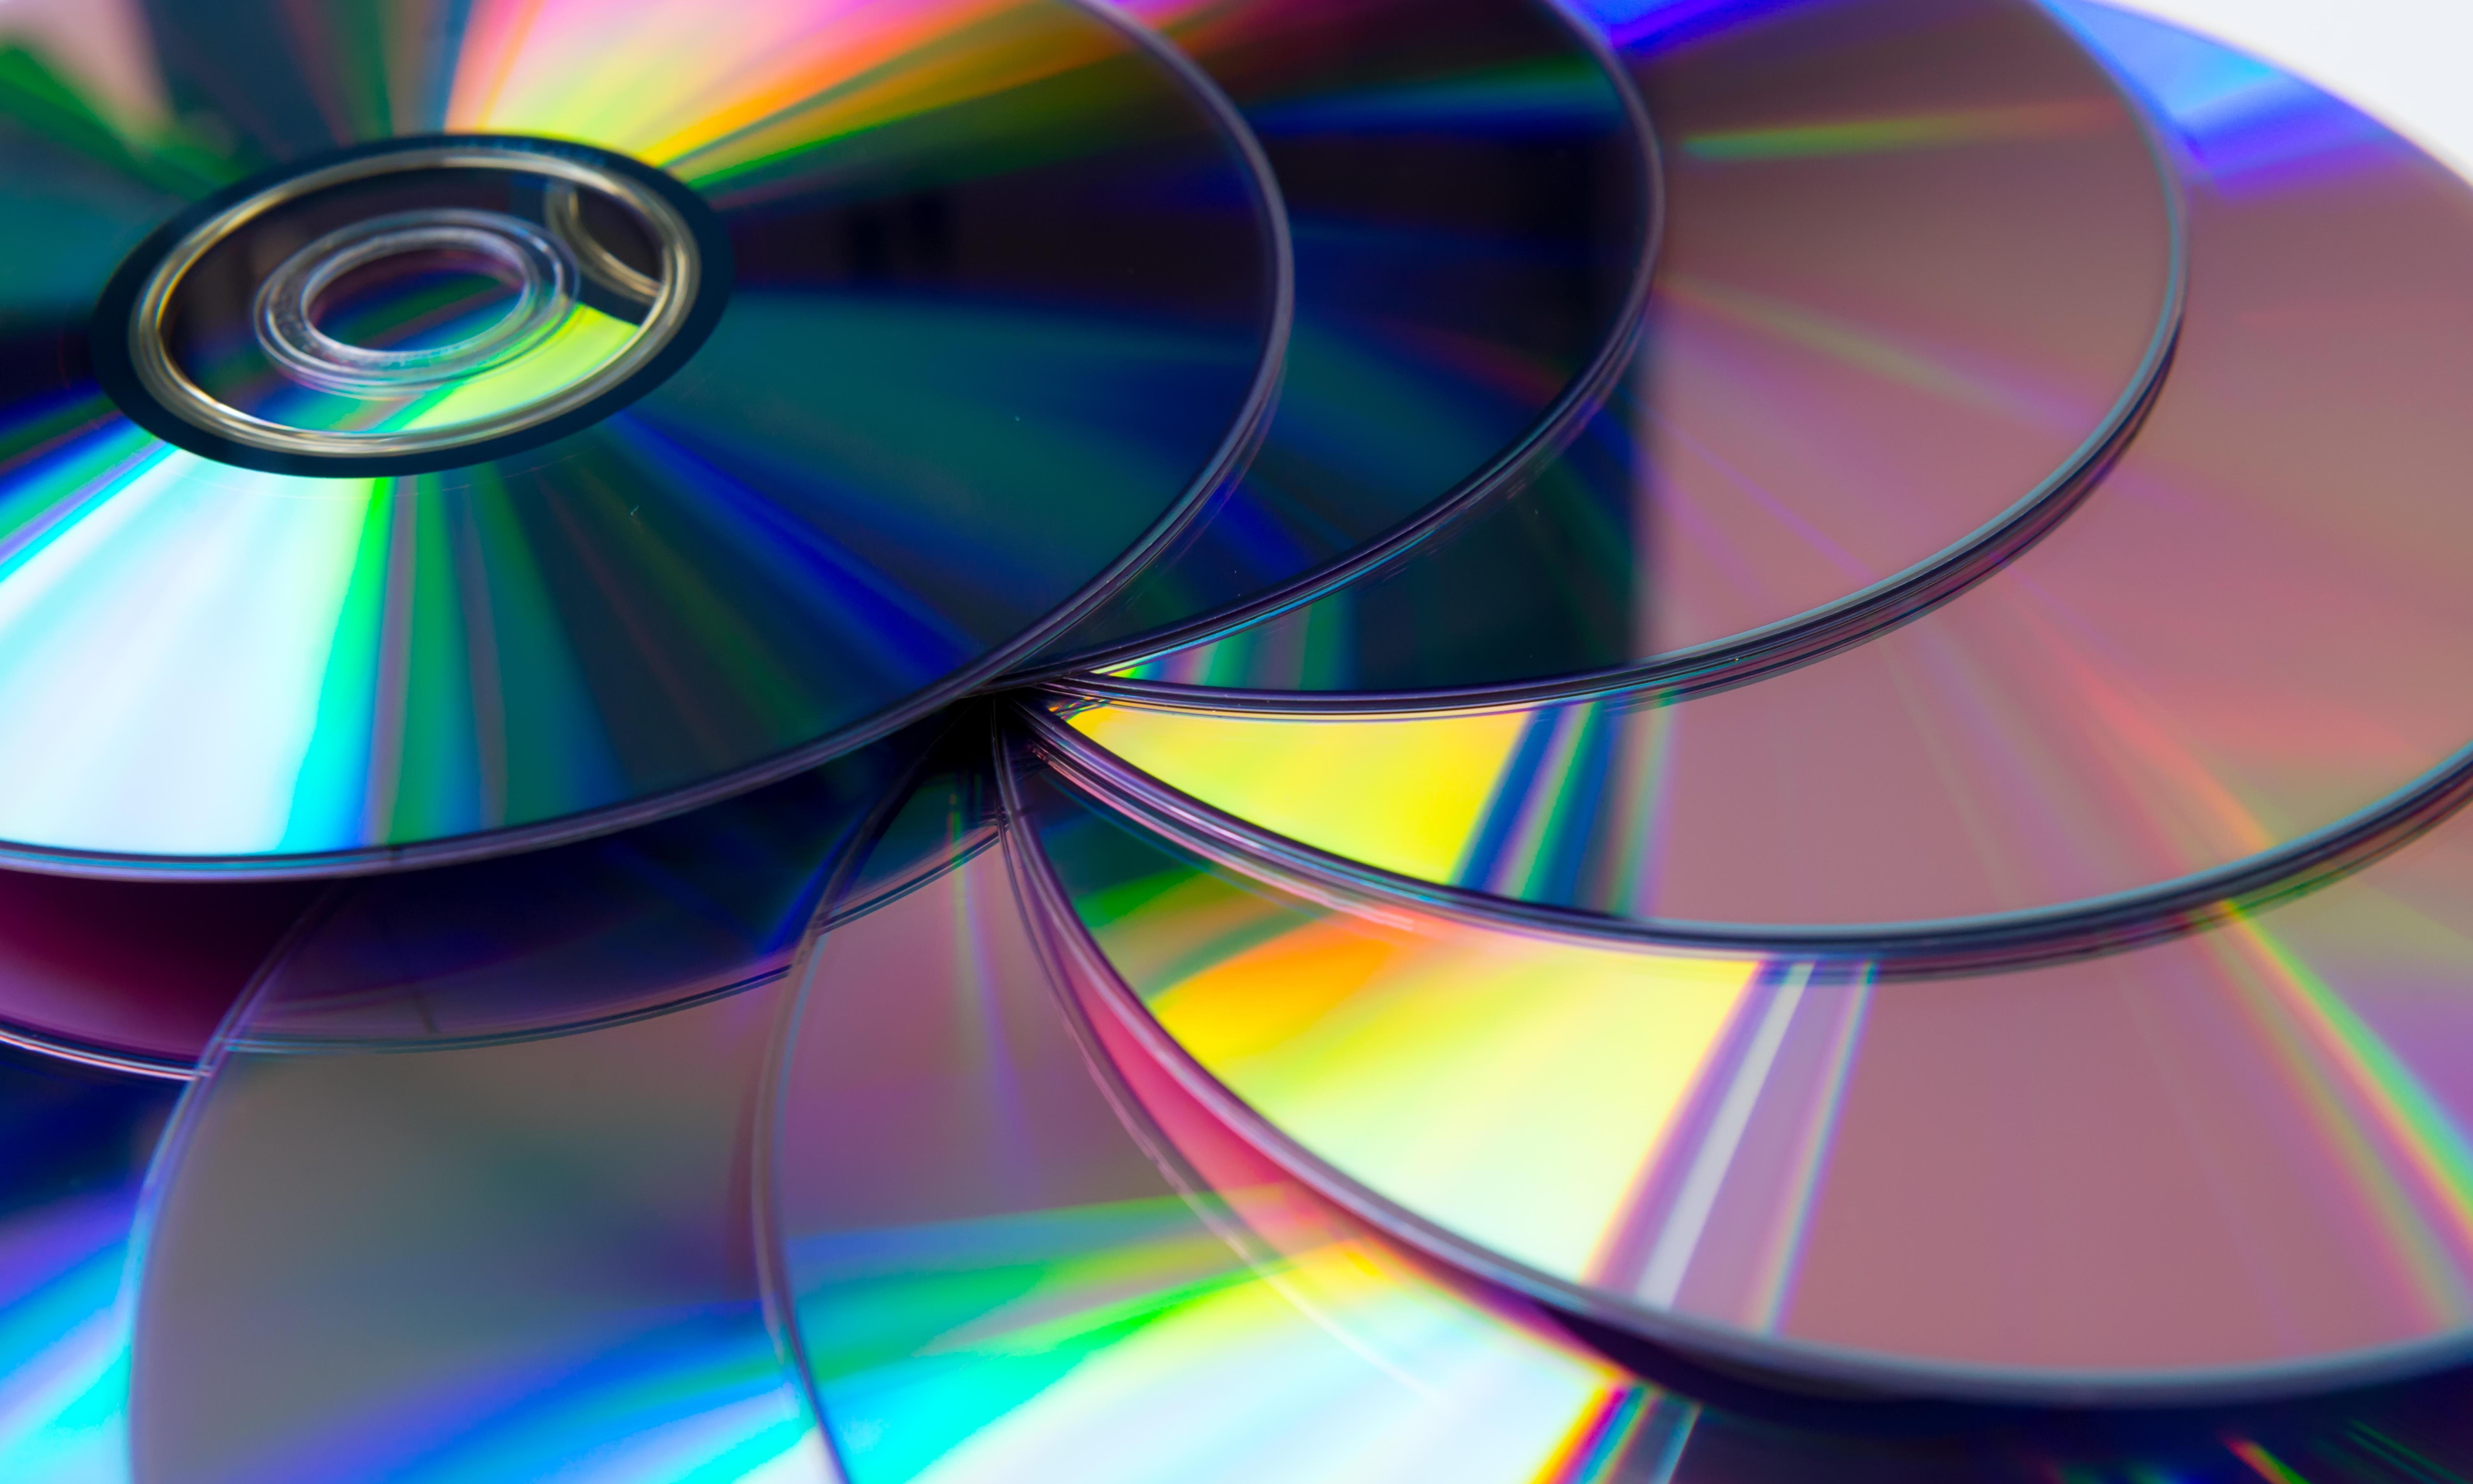 How can I copy 1,400 DVDs to a new hard drive?